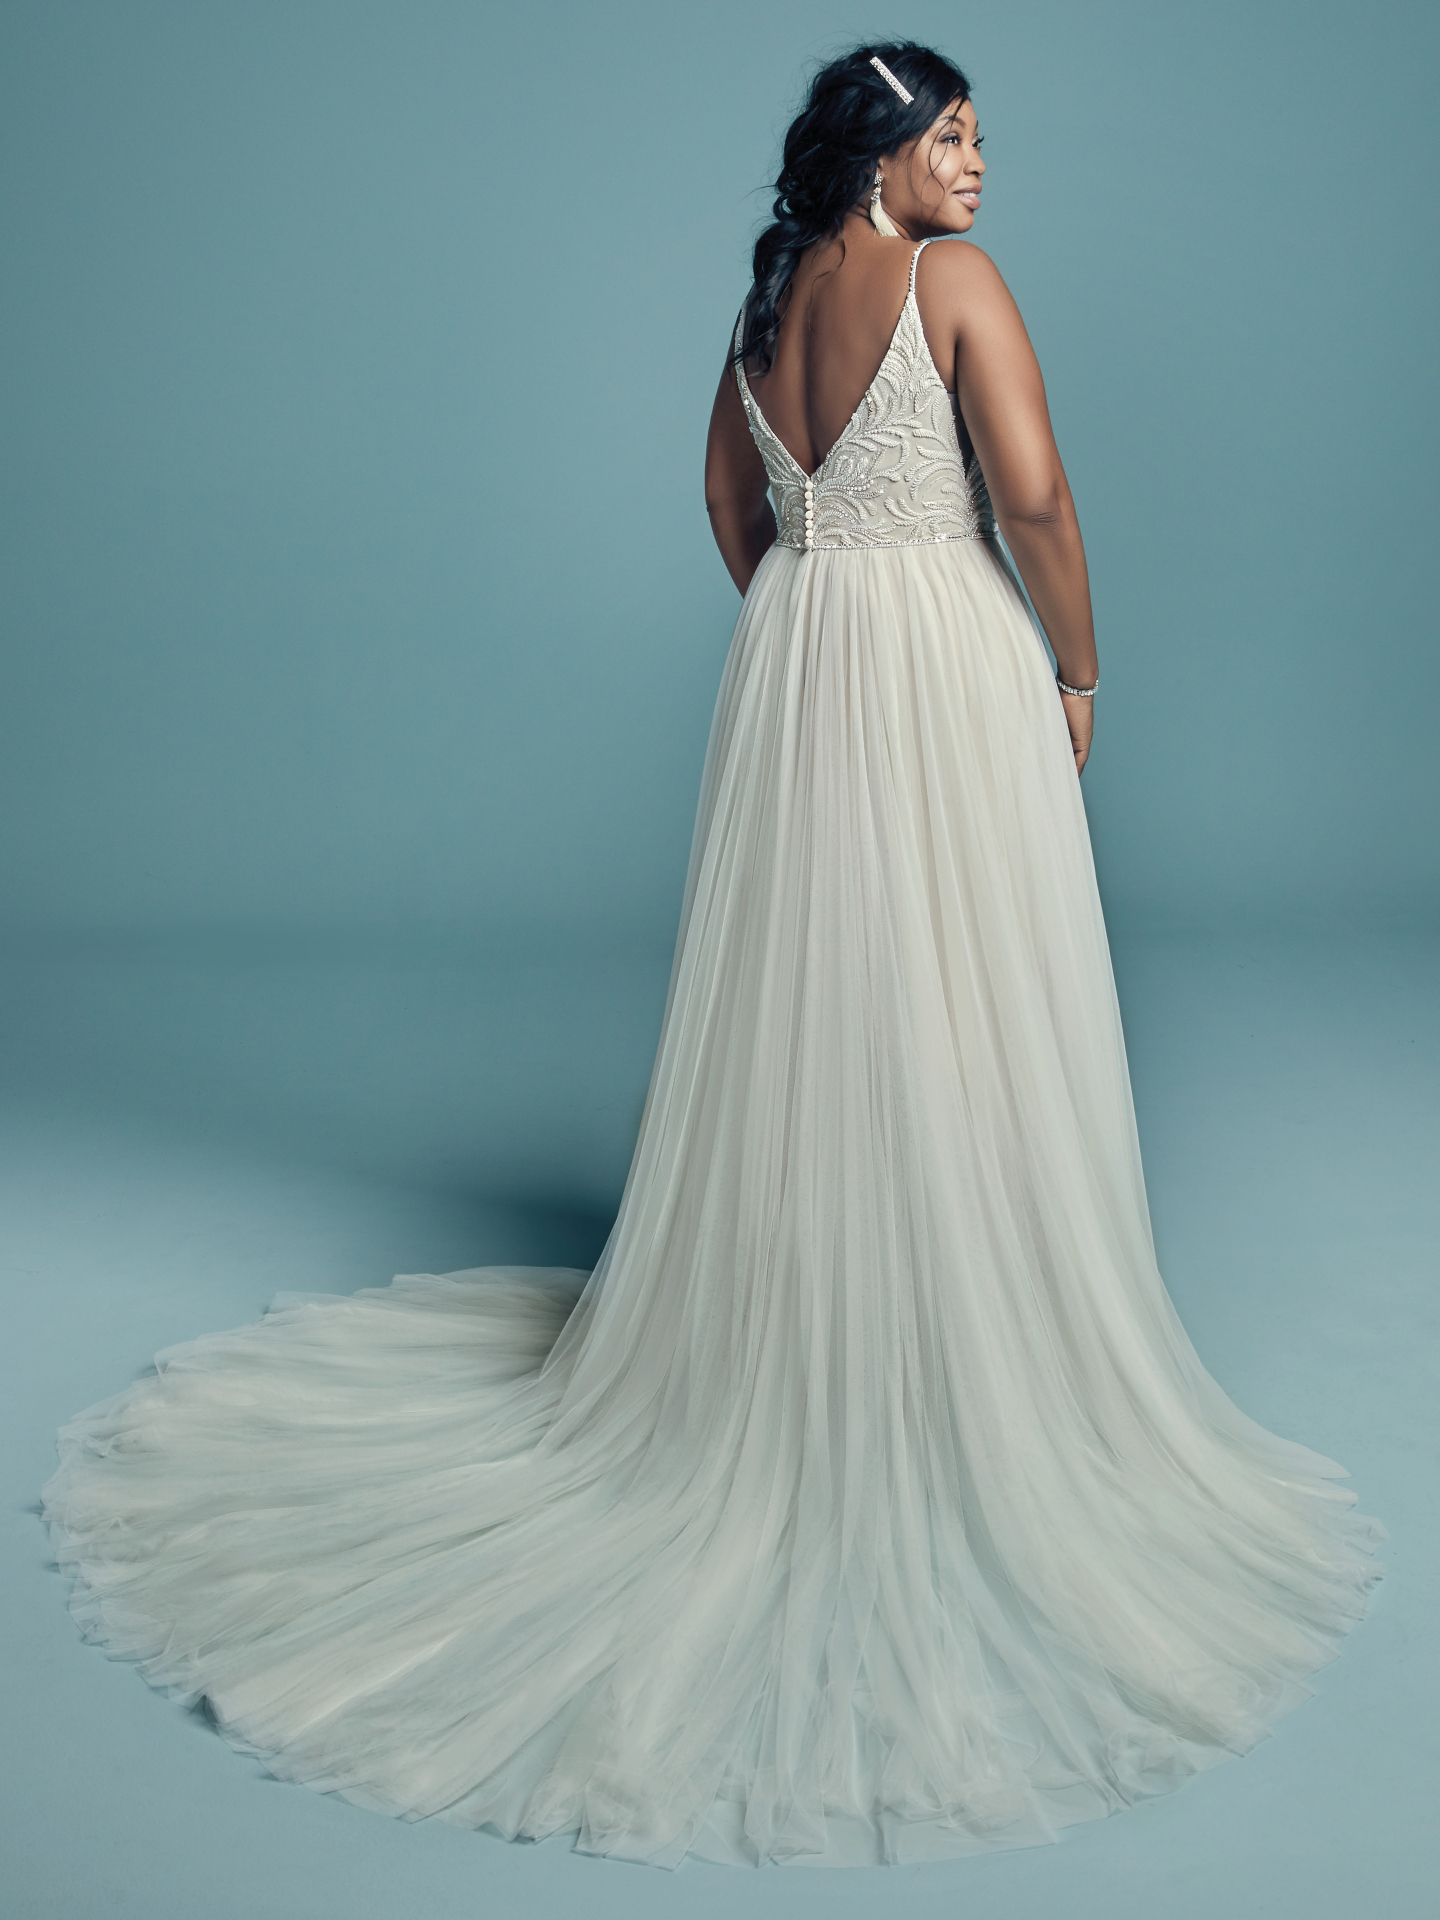 The Ultimate Guide to Wedding Gowns for Curvy Brides from Whitney of CurveGenius - Try the Charlene Lynette wedding dress by Maggie Sottero for body types with a smaller bust and fuller hip